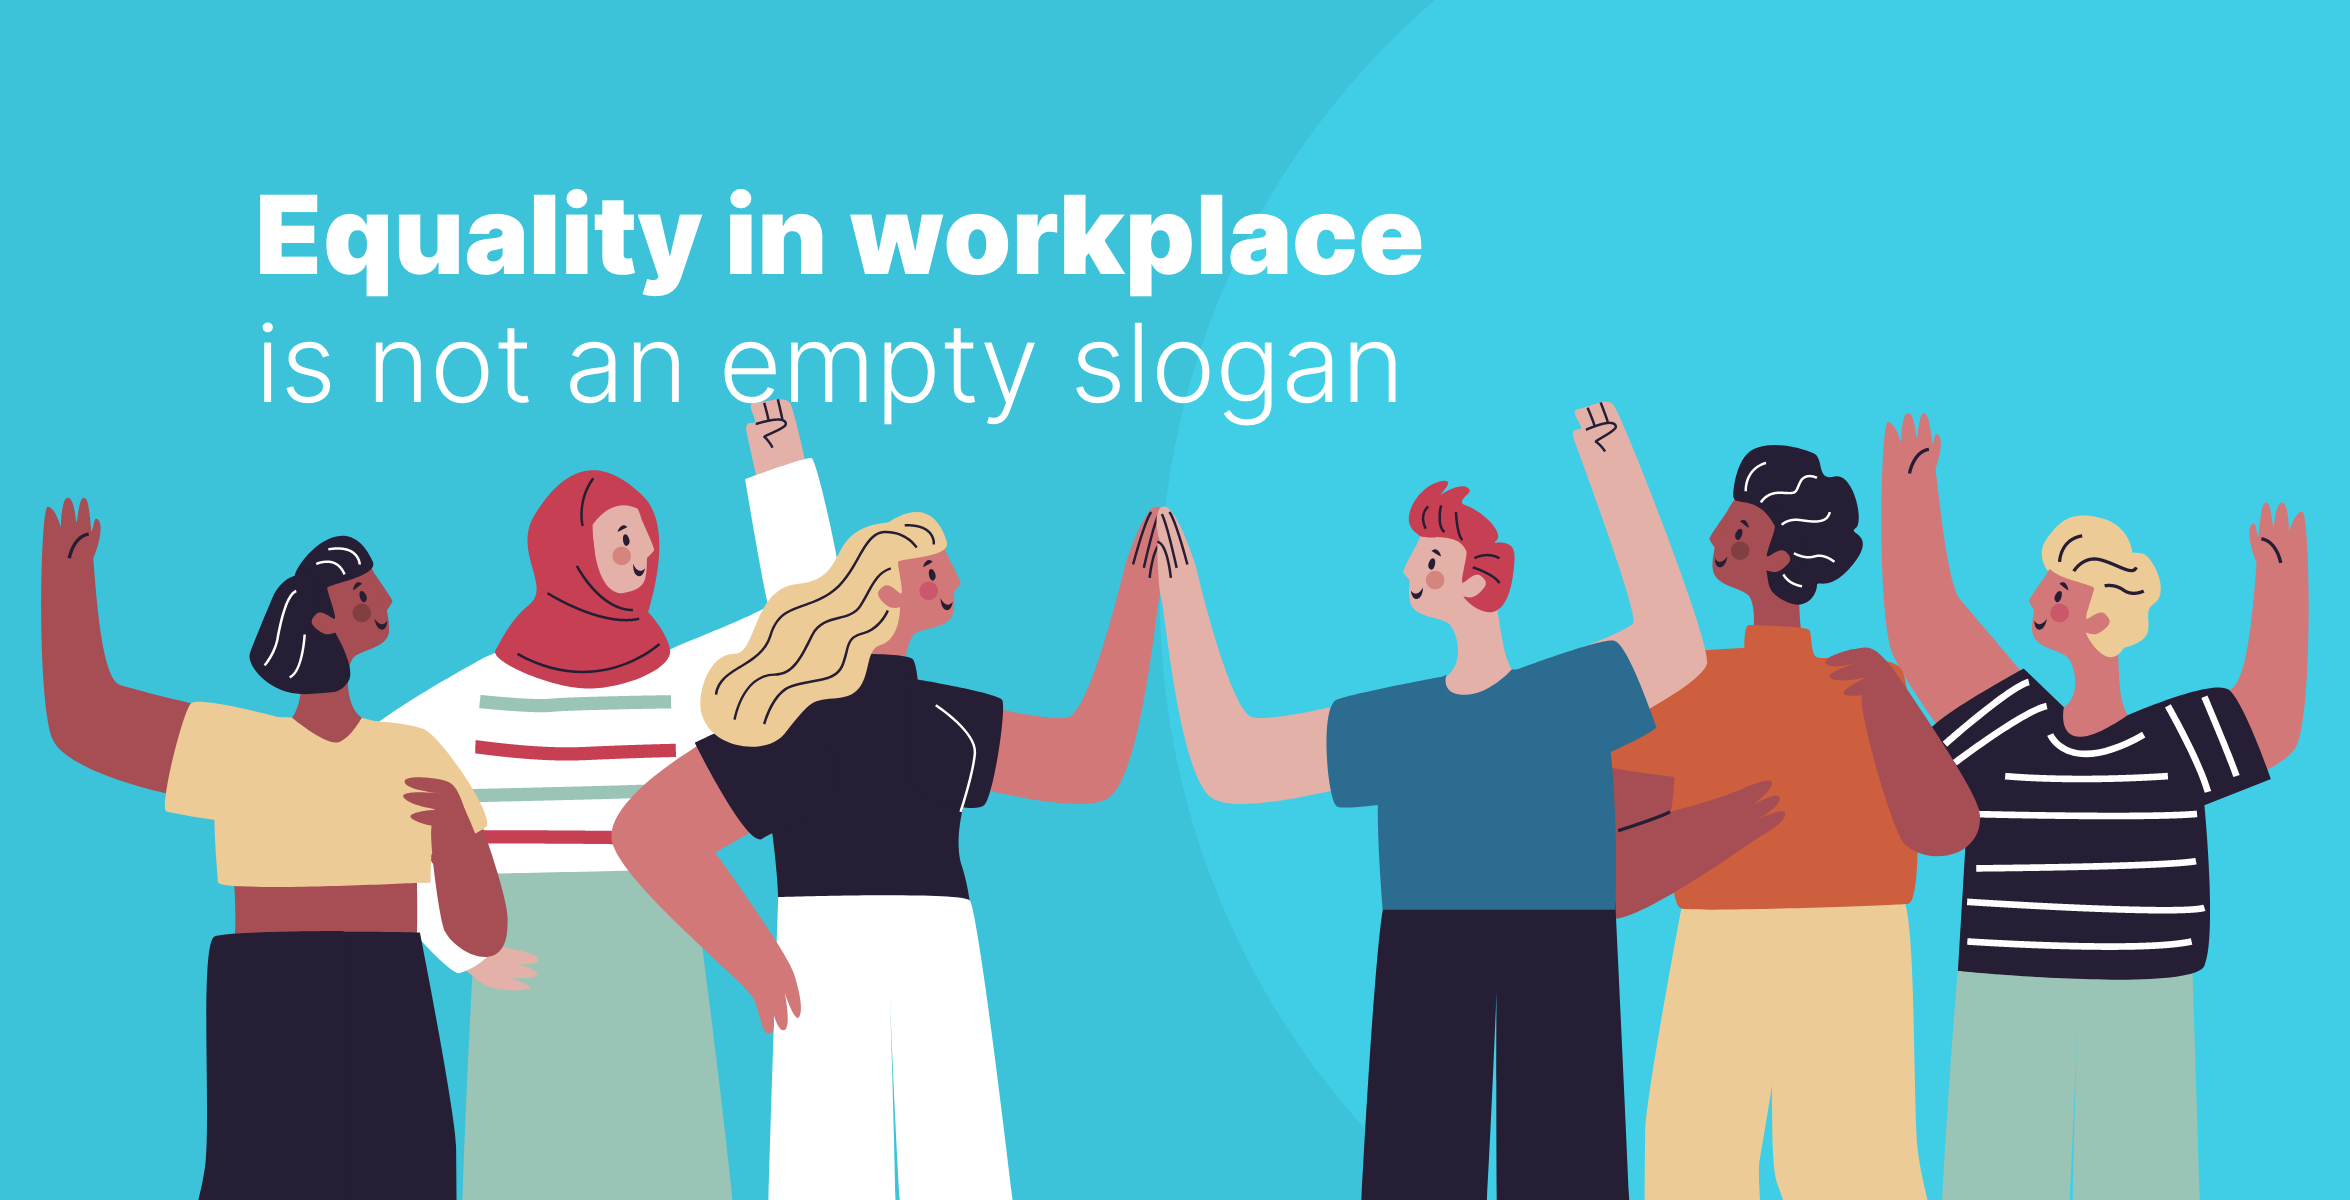 Equality in workplace is not an empty slogan